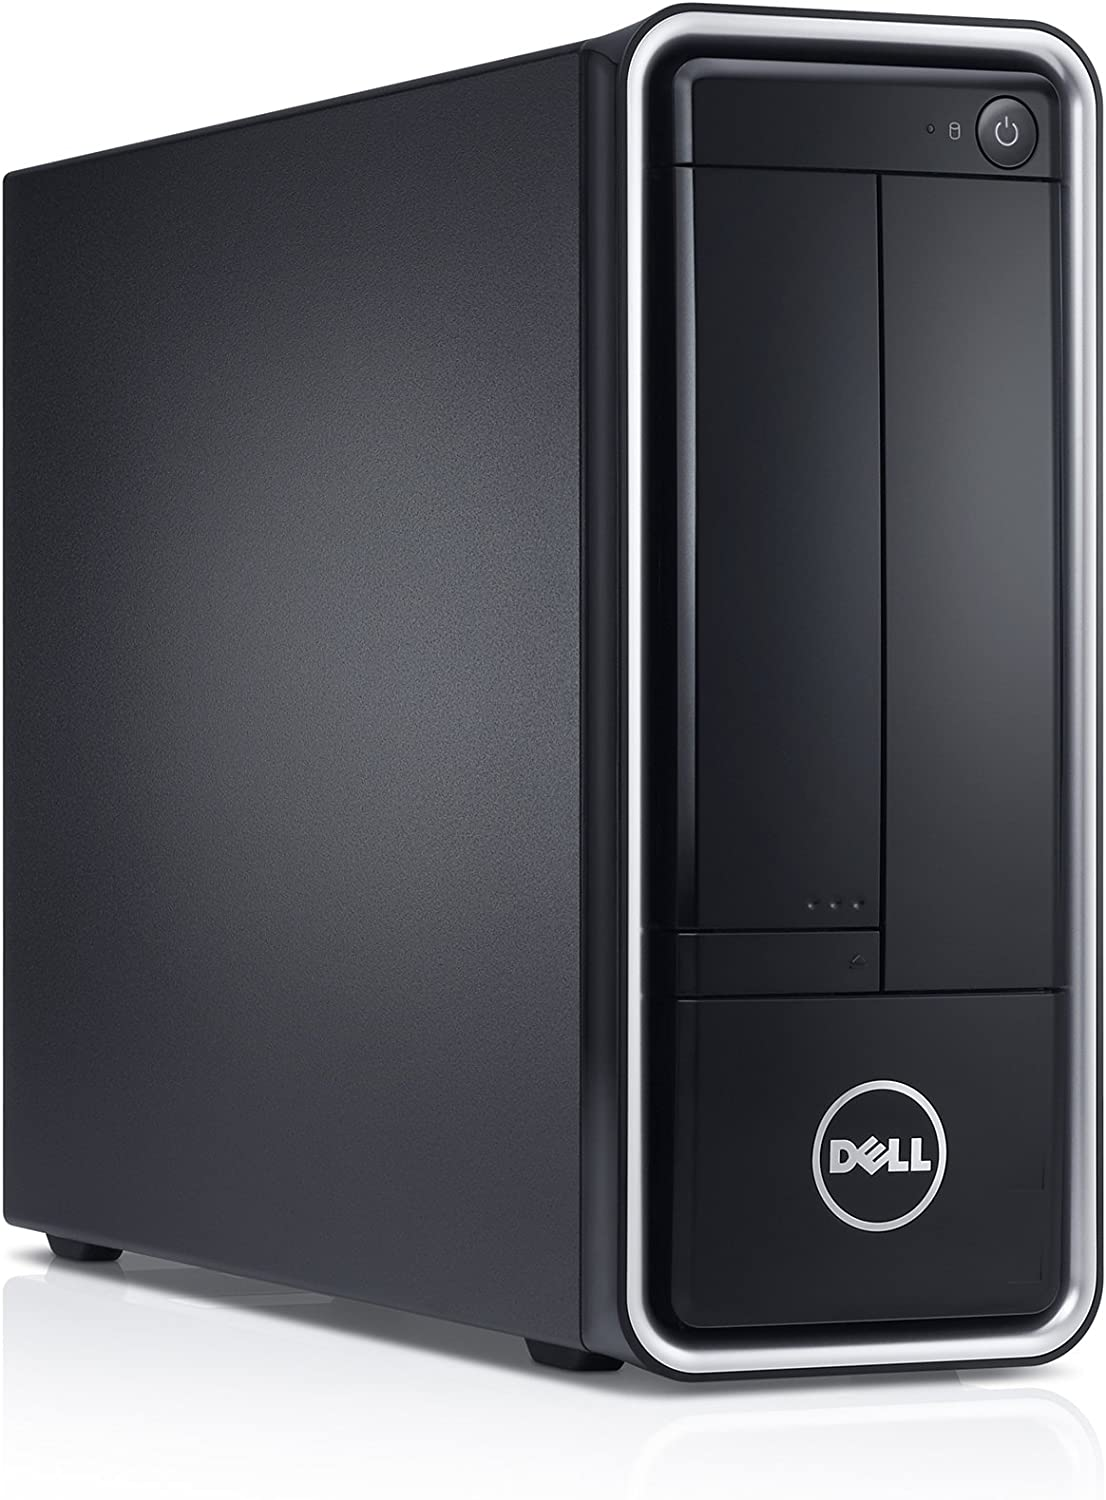 Dell Inspiron i660s-779BK Desktop (2.7 GHz Intel Celeron G470 Processor, 4GB DDR3, 500GB HDD, Windows 8) Black (Discontinued by Manufacturer)